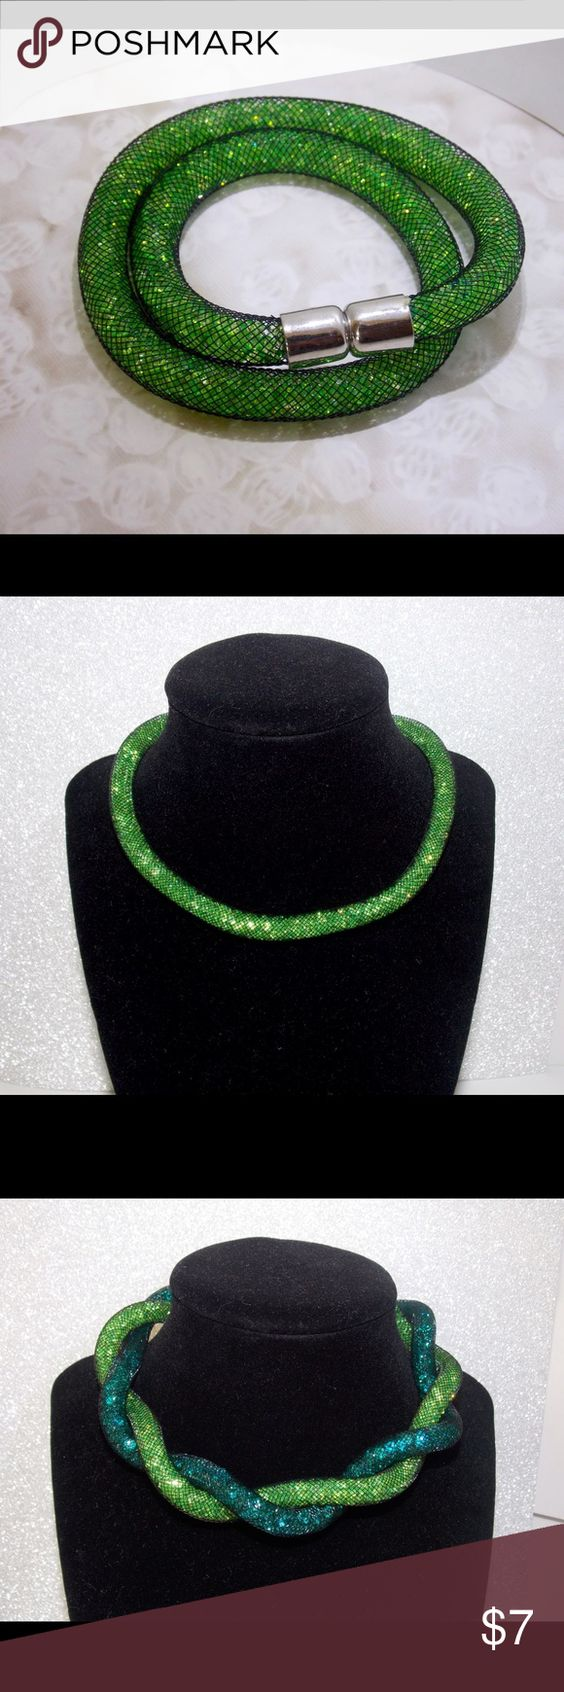 Dark green bracelet/necklace New dark green bracelet/necklace! This beautiful bracelet is full of Swarovski and you can use this like a Chocker necklace or mix them with different colors like the one on the 2nd picture.   Part of my jewelry shop Le'Luks! Follow us :) Jewelry Bracelets